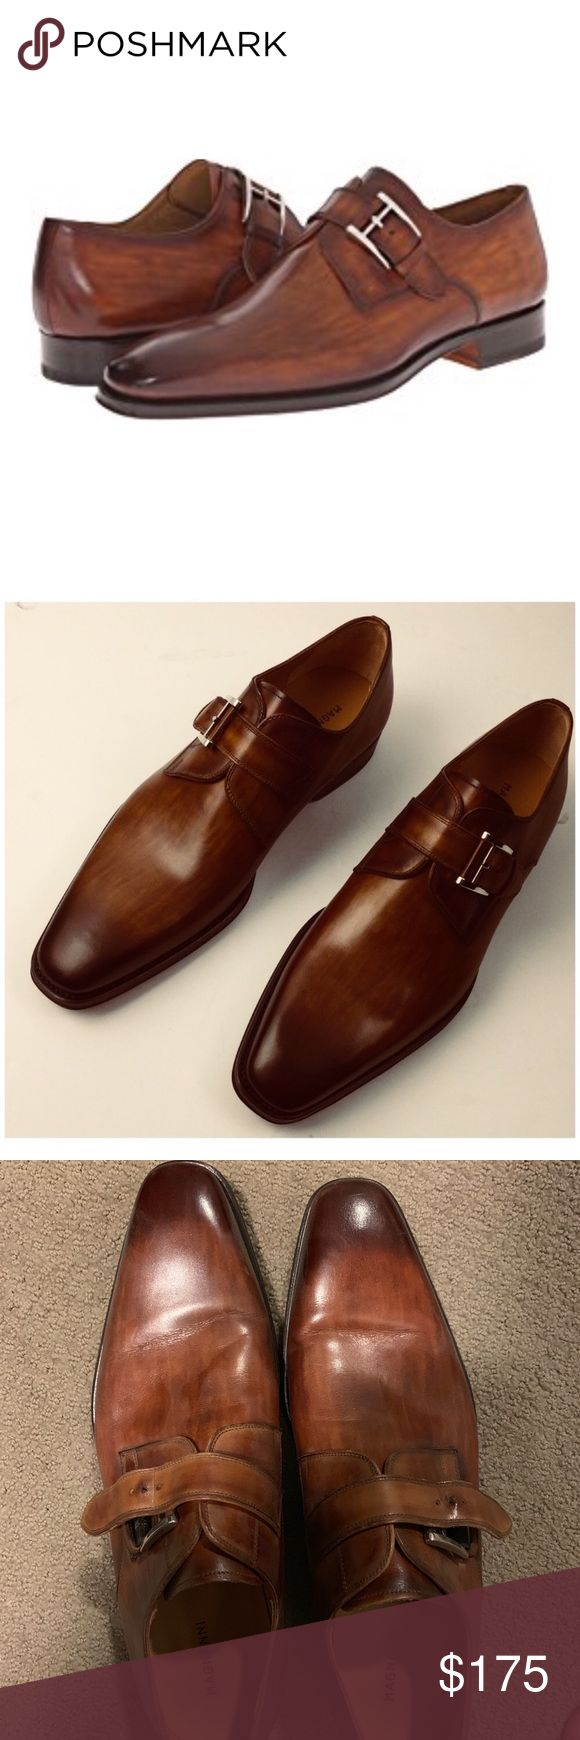 Magnanni Dress Shoes (Monk/Monk Straps) Maybe worn once or twice, otherwise imma...